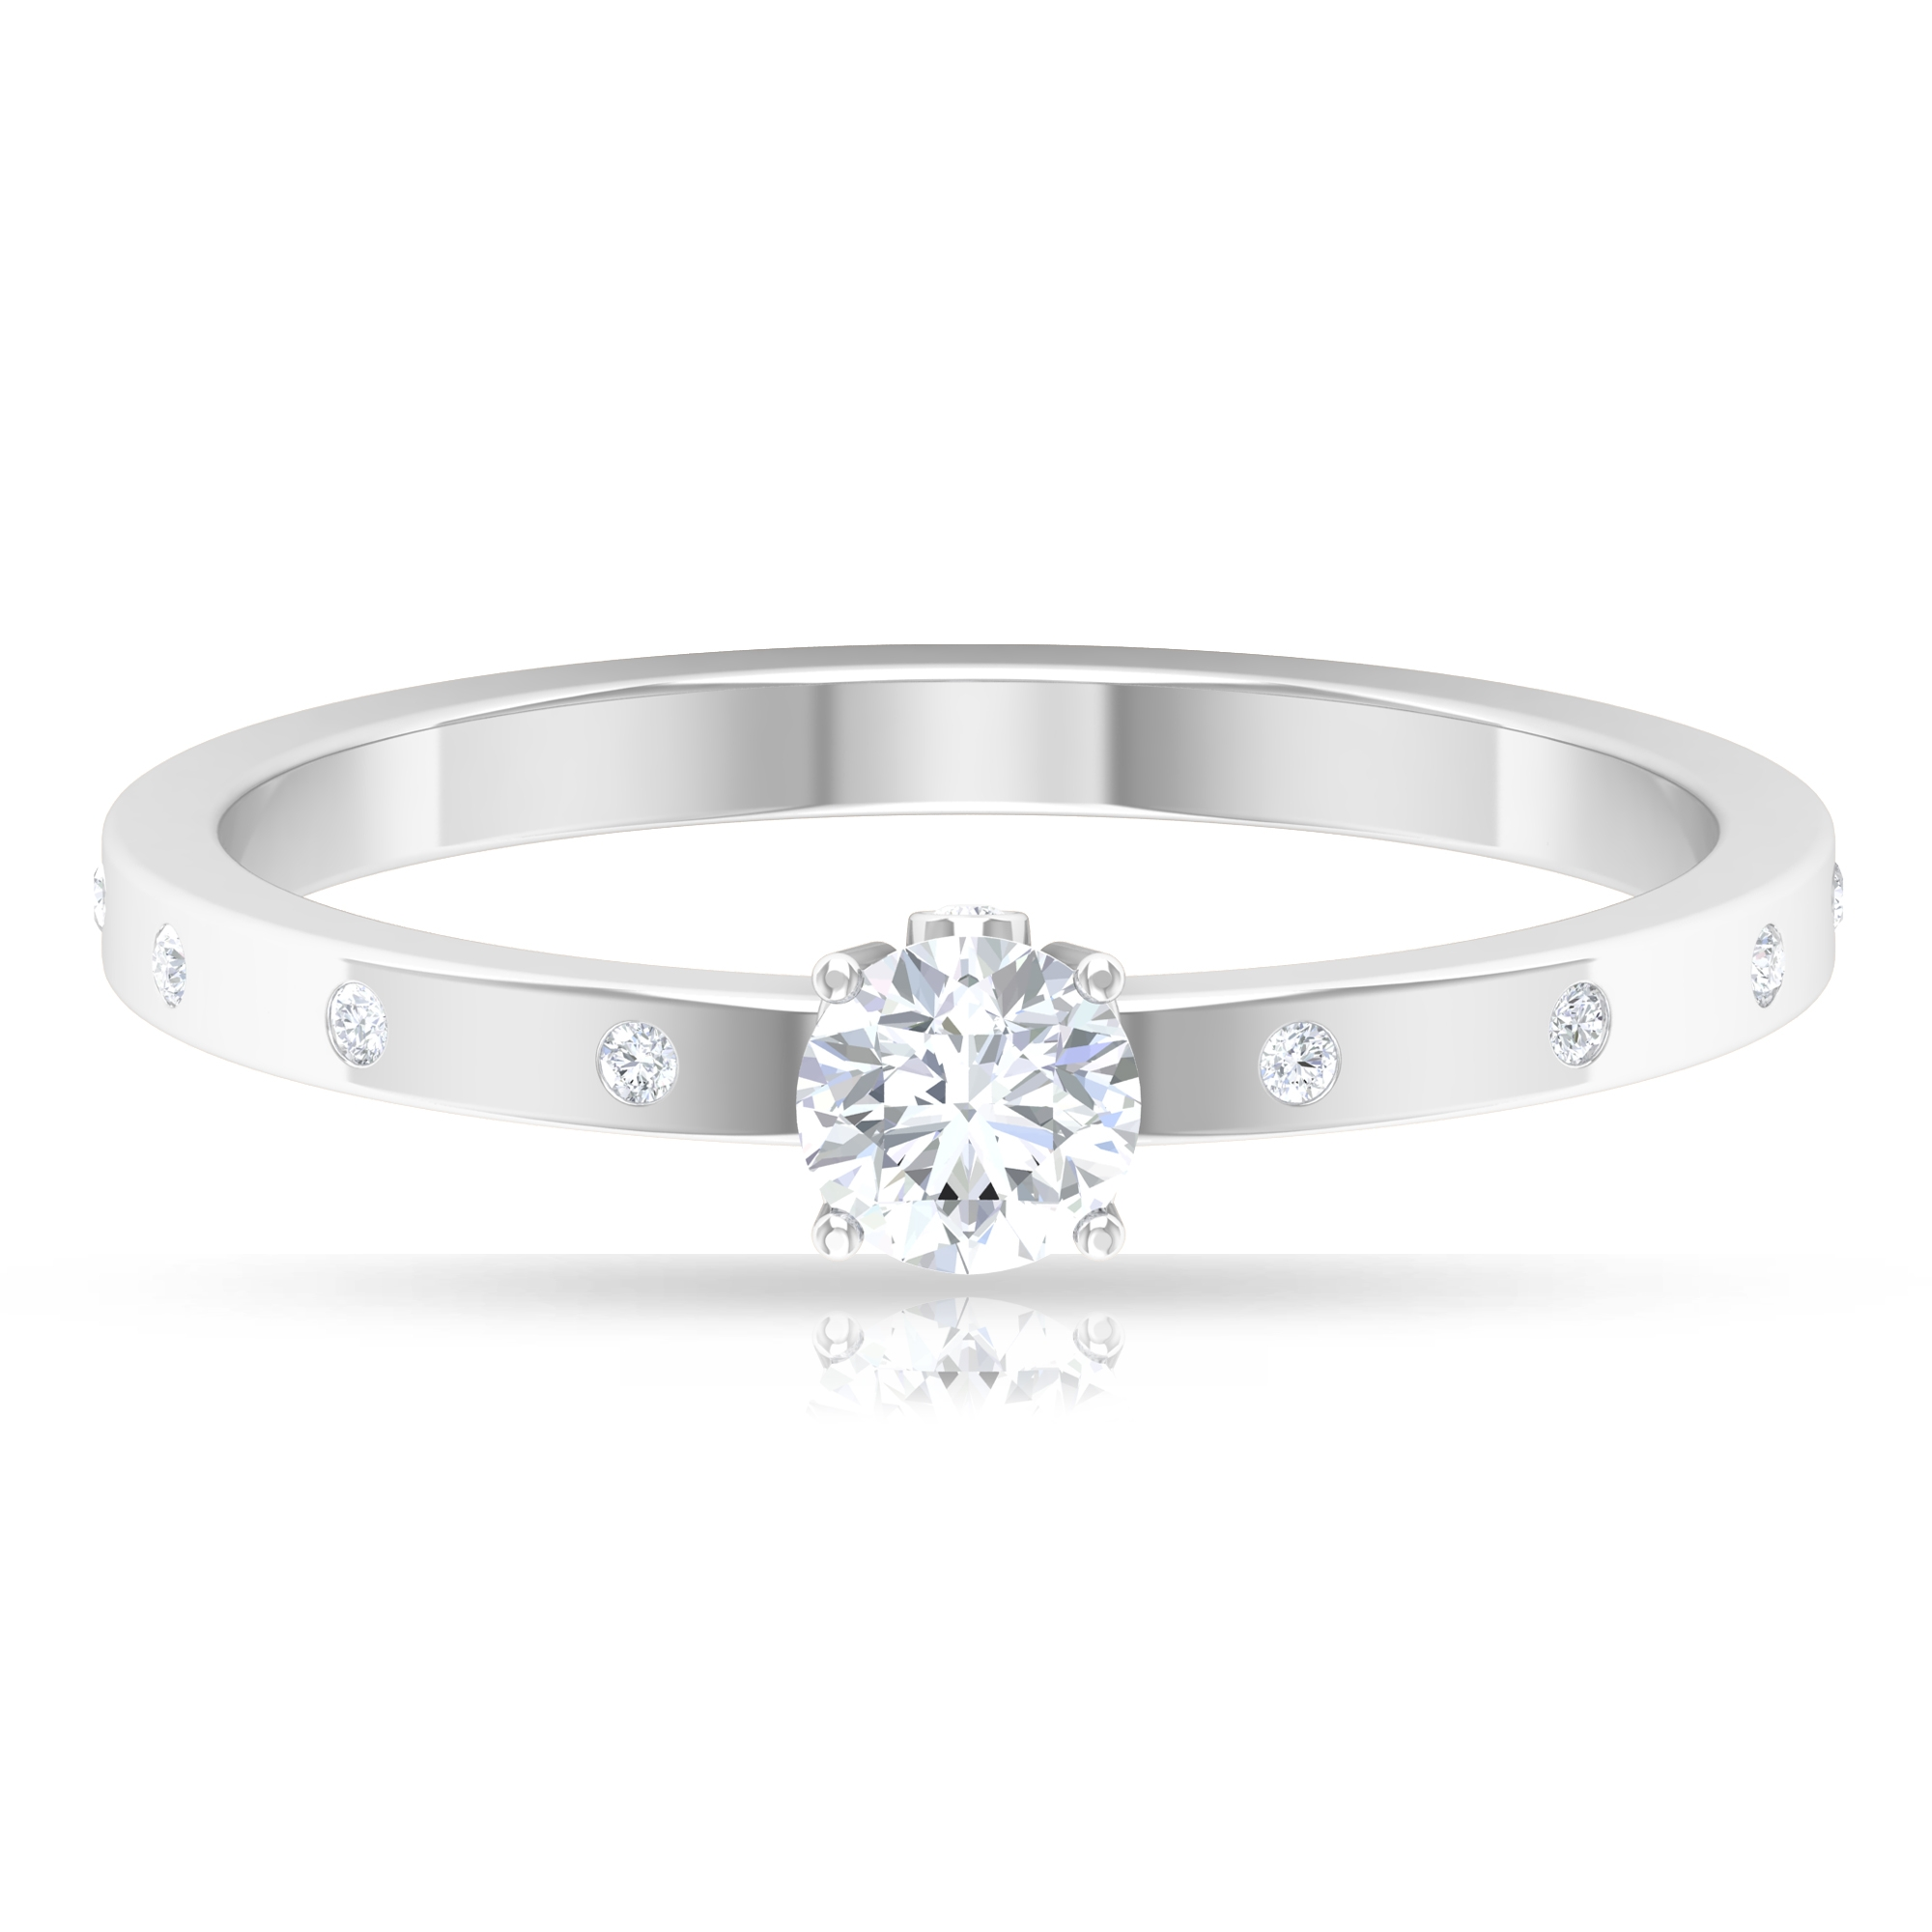 4 MM Round Cut Solitaire Diamond Ring with Sleek Accent and Surprise Shank Style